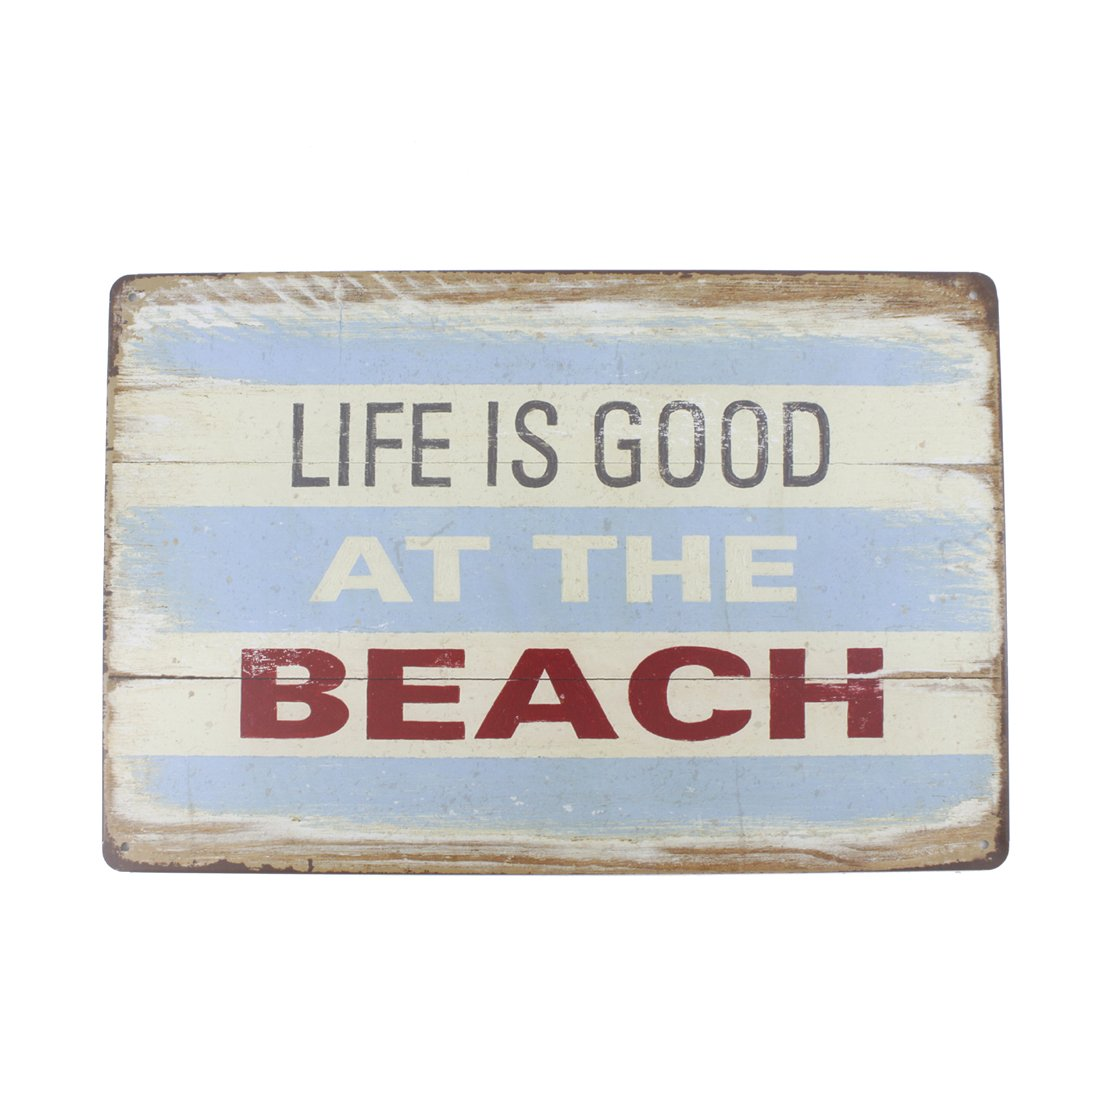 Life is Good at The Beach 12x8 Inches Pub,bar,Home Wall Decor Souvenir Hanging Metal Tin Sign Plate Plaque Homesweeter1900 model